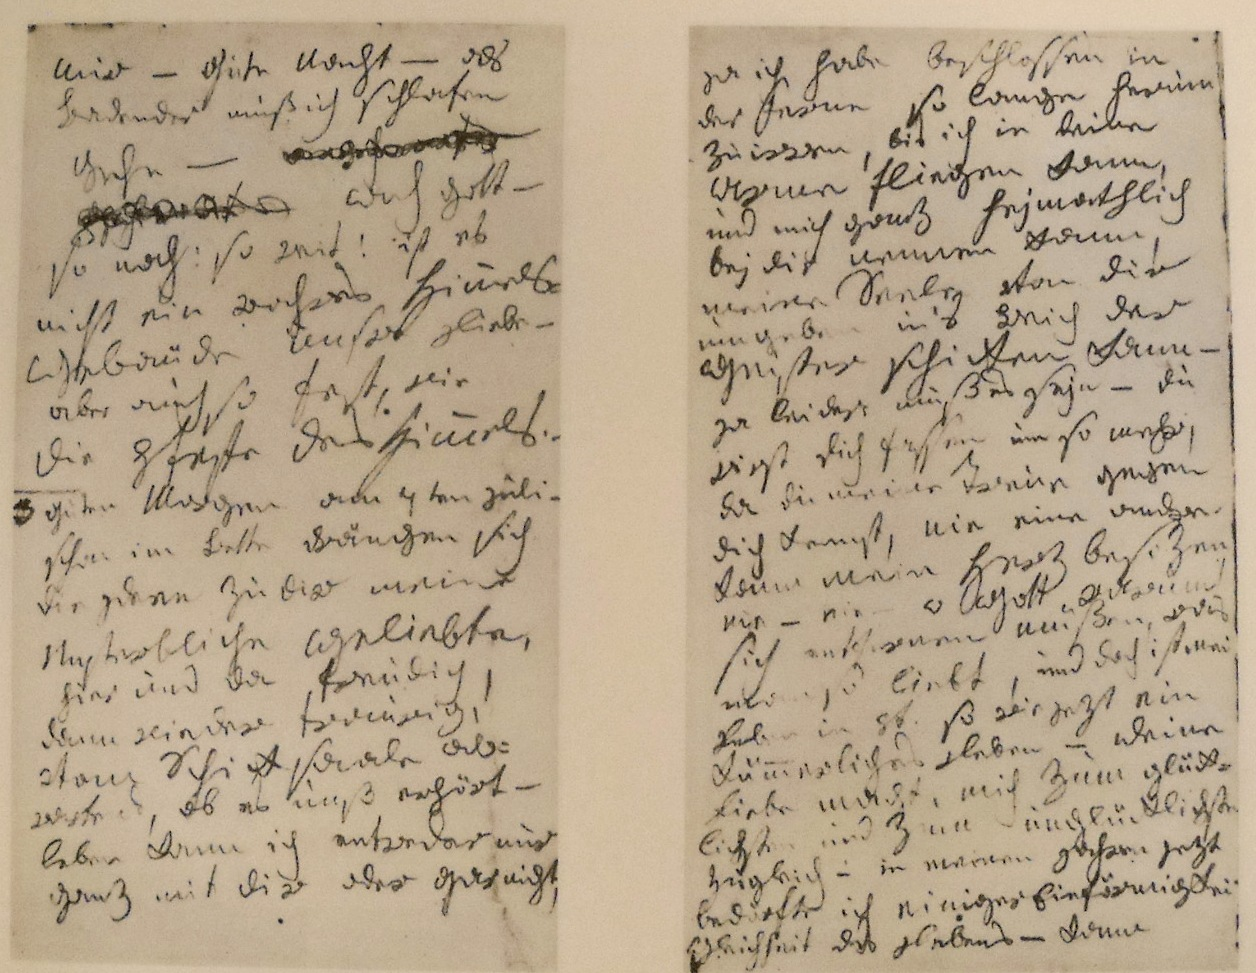 The Daily Beethoven: 11/23 The Immortal Beloved Letter (Autograph)